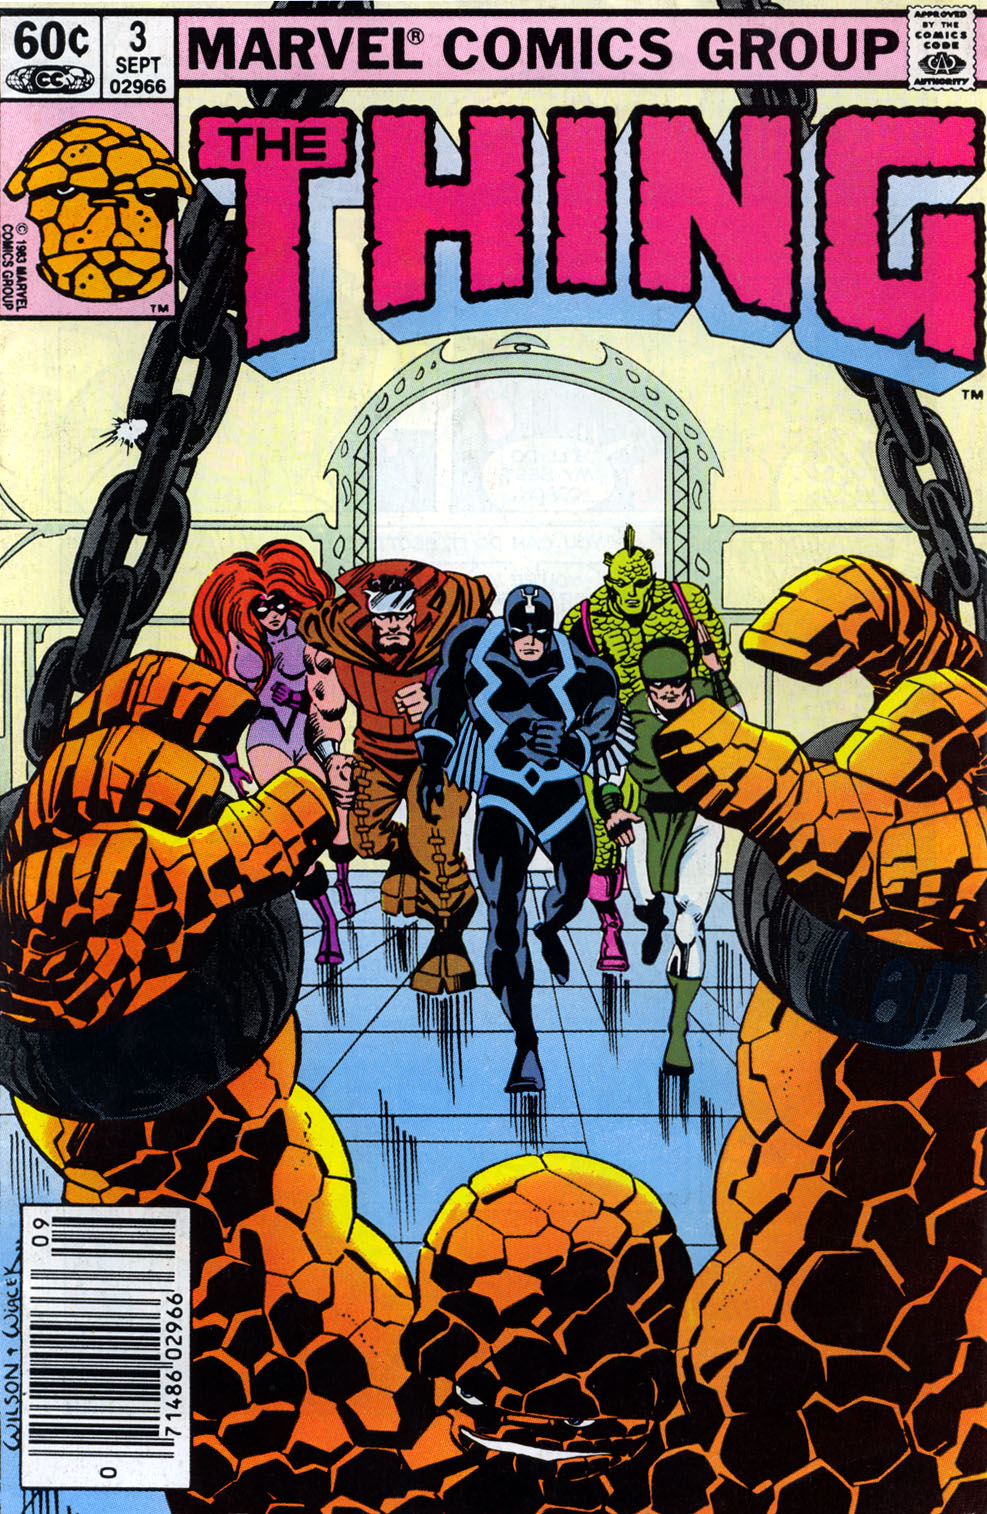 The Thing (1983) issue 3 - Page 1